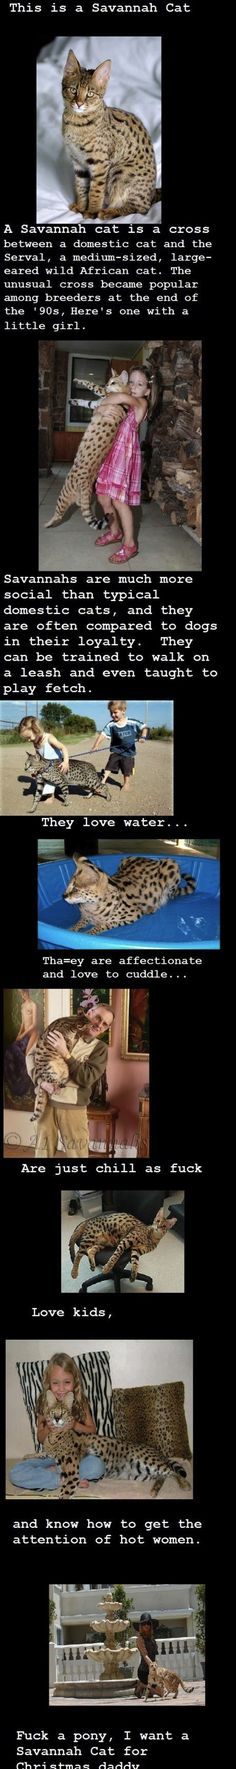 I want a Savannah cat and I want it now…